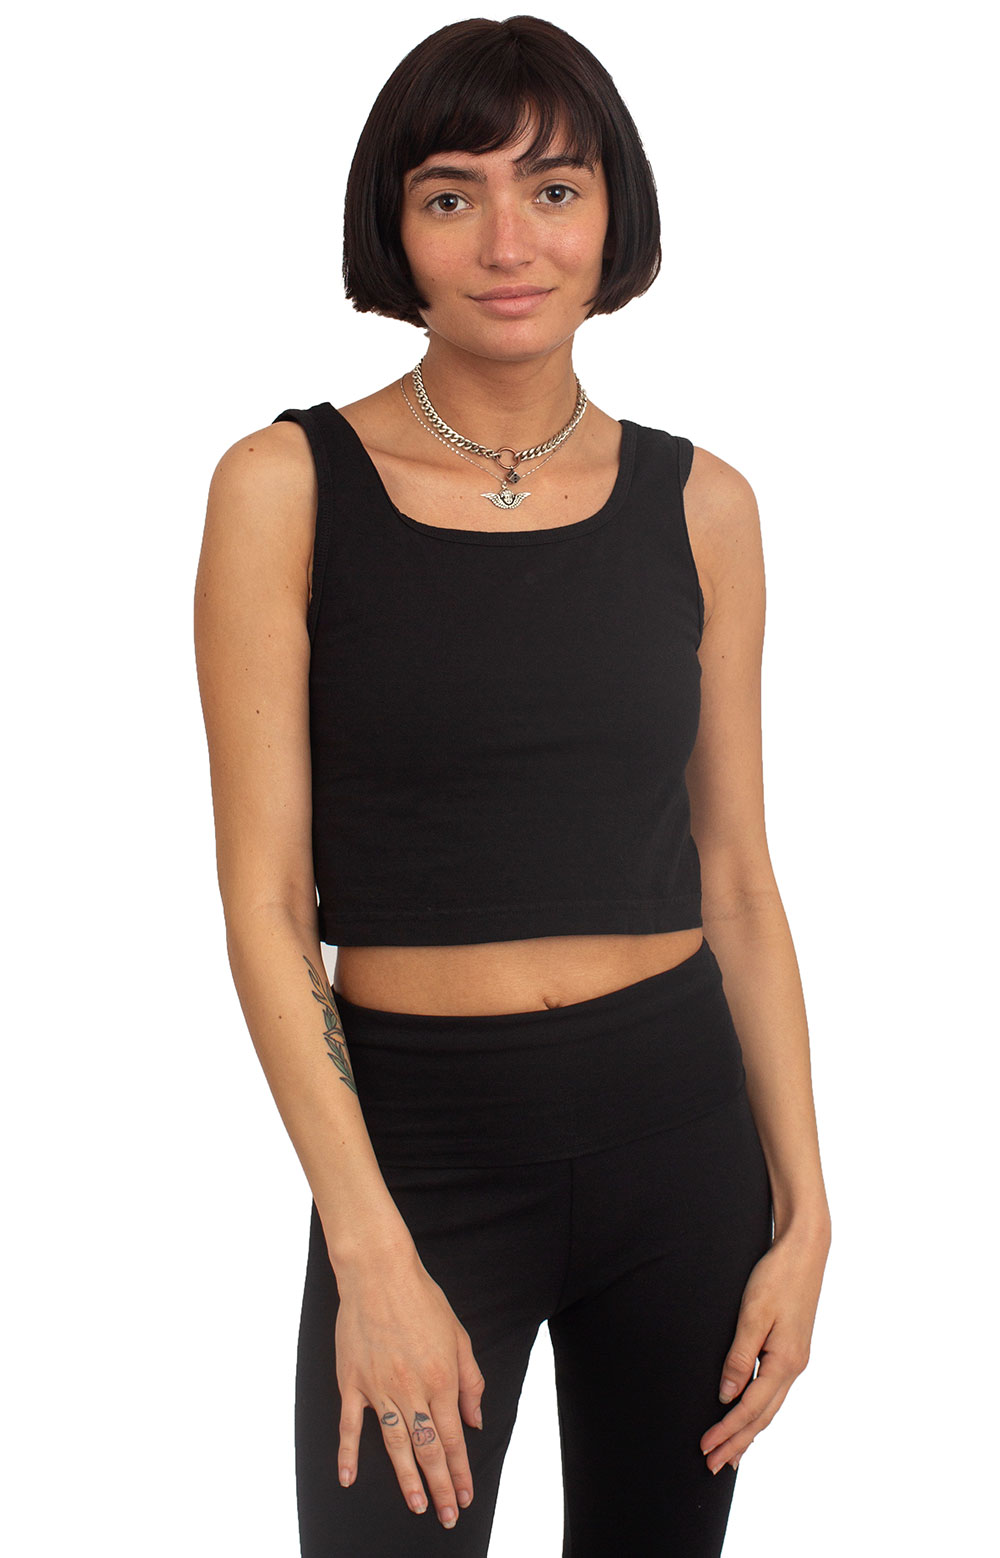 Garment Dye Crop Tank - Black